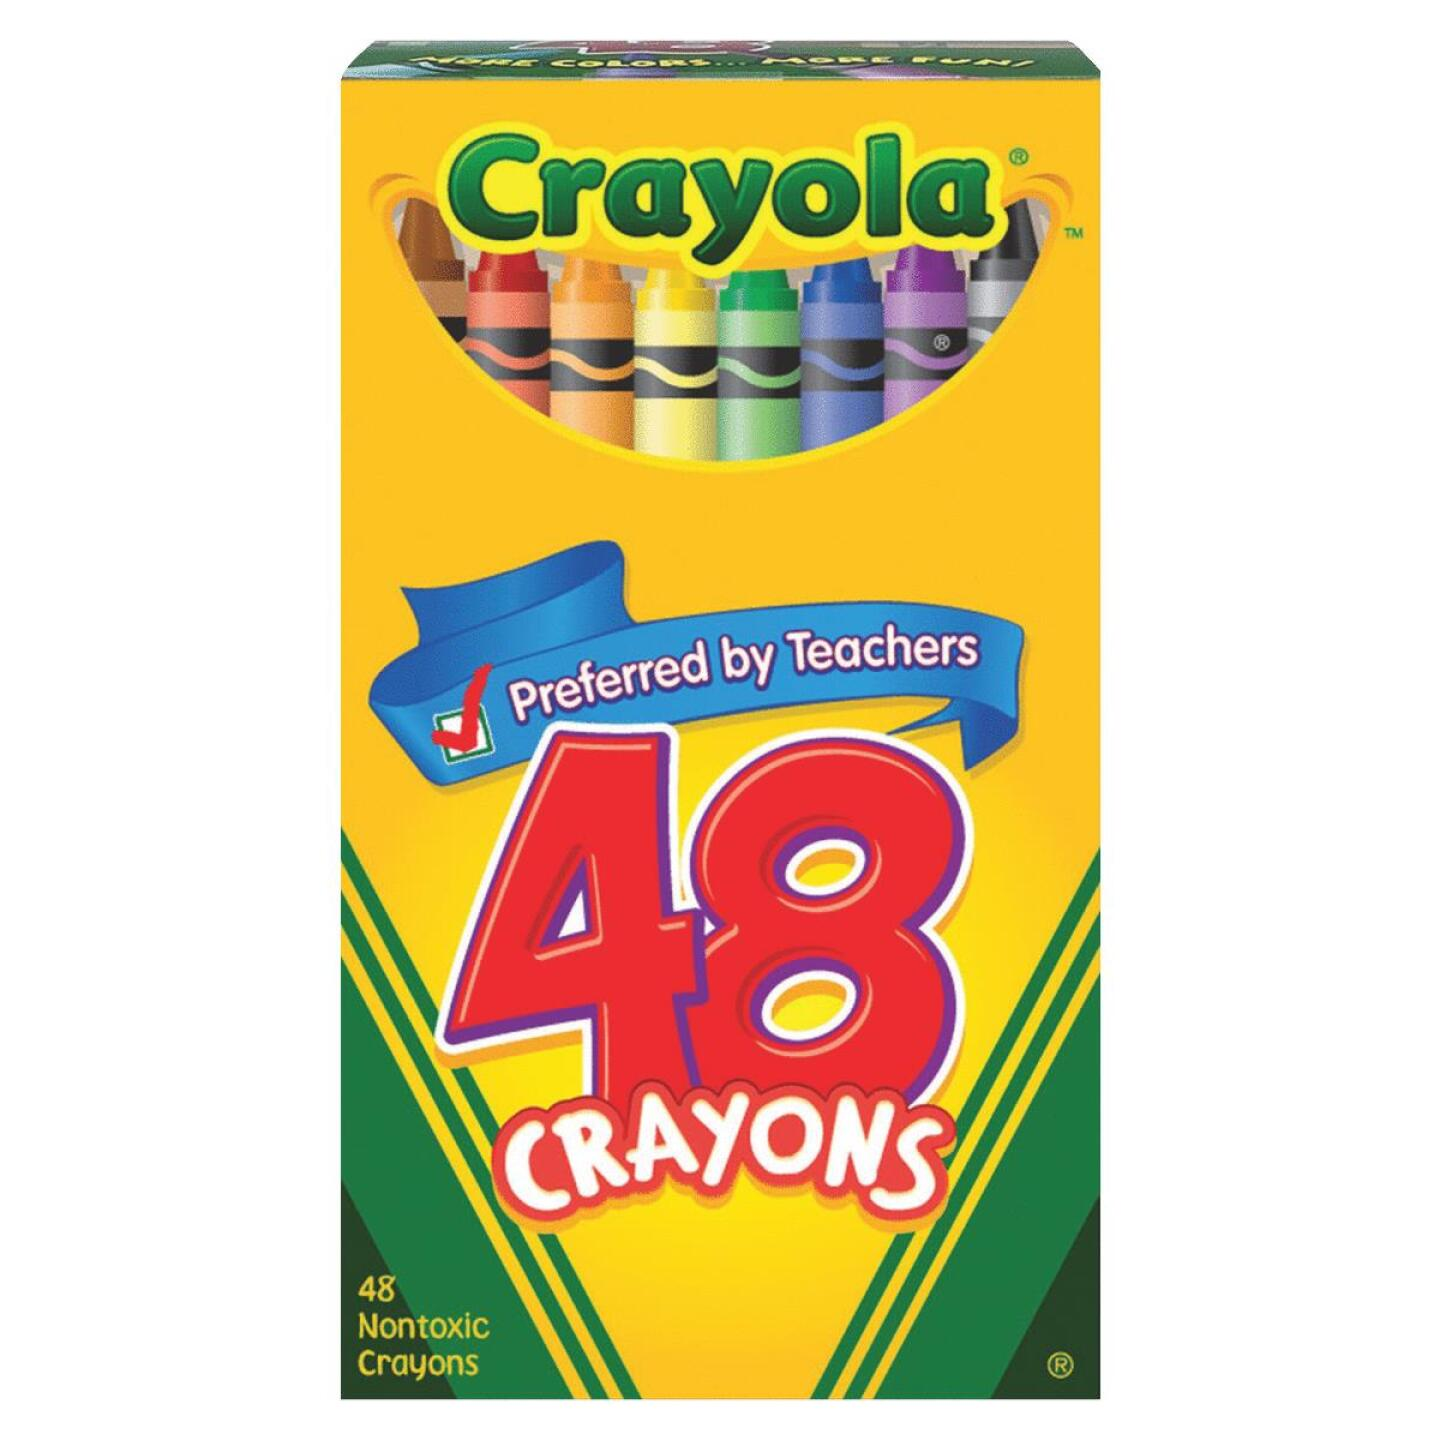 Crayola Traditional Crayons (48-Pack) Image 1